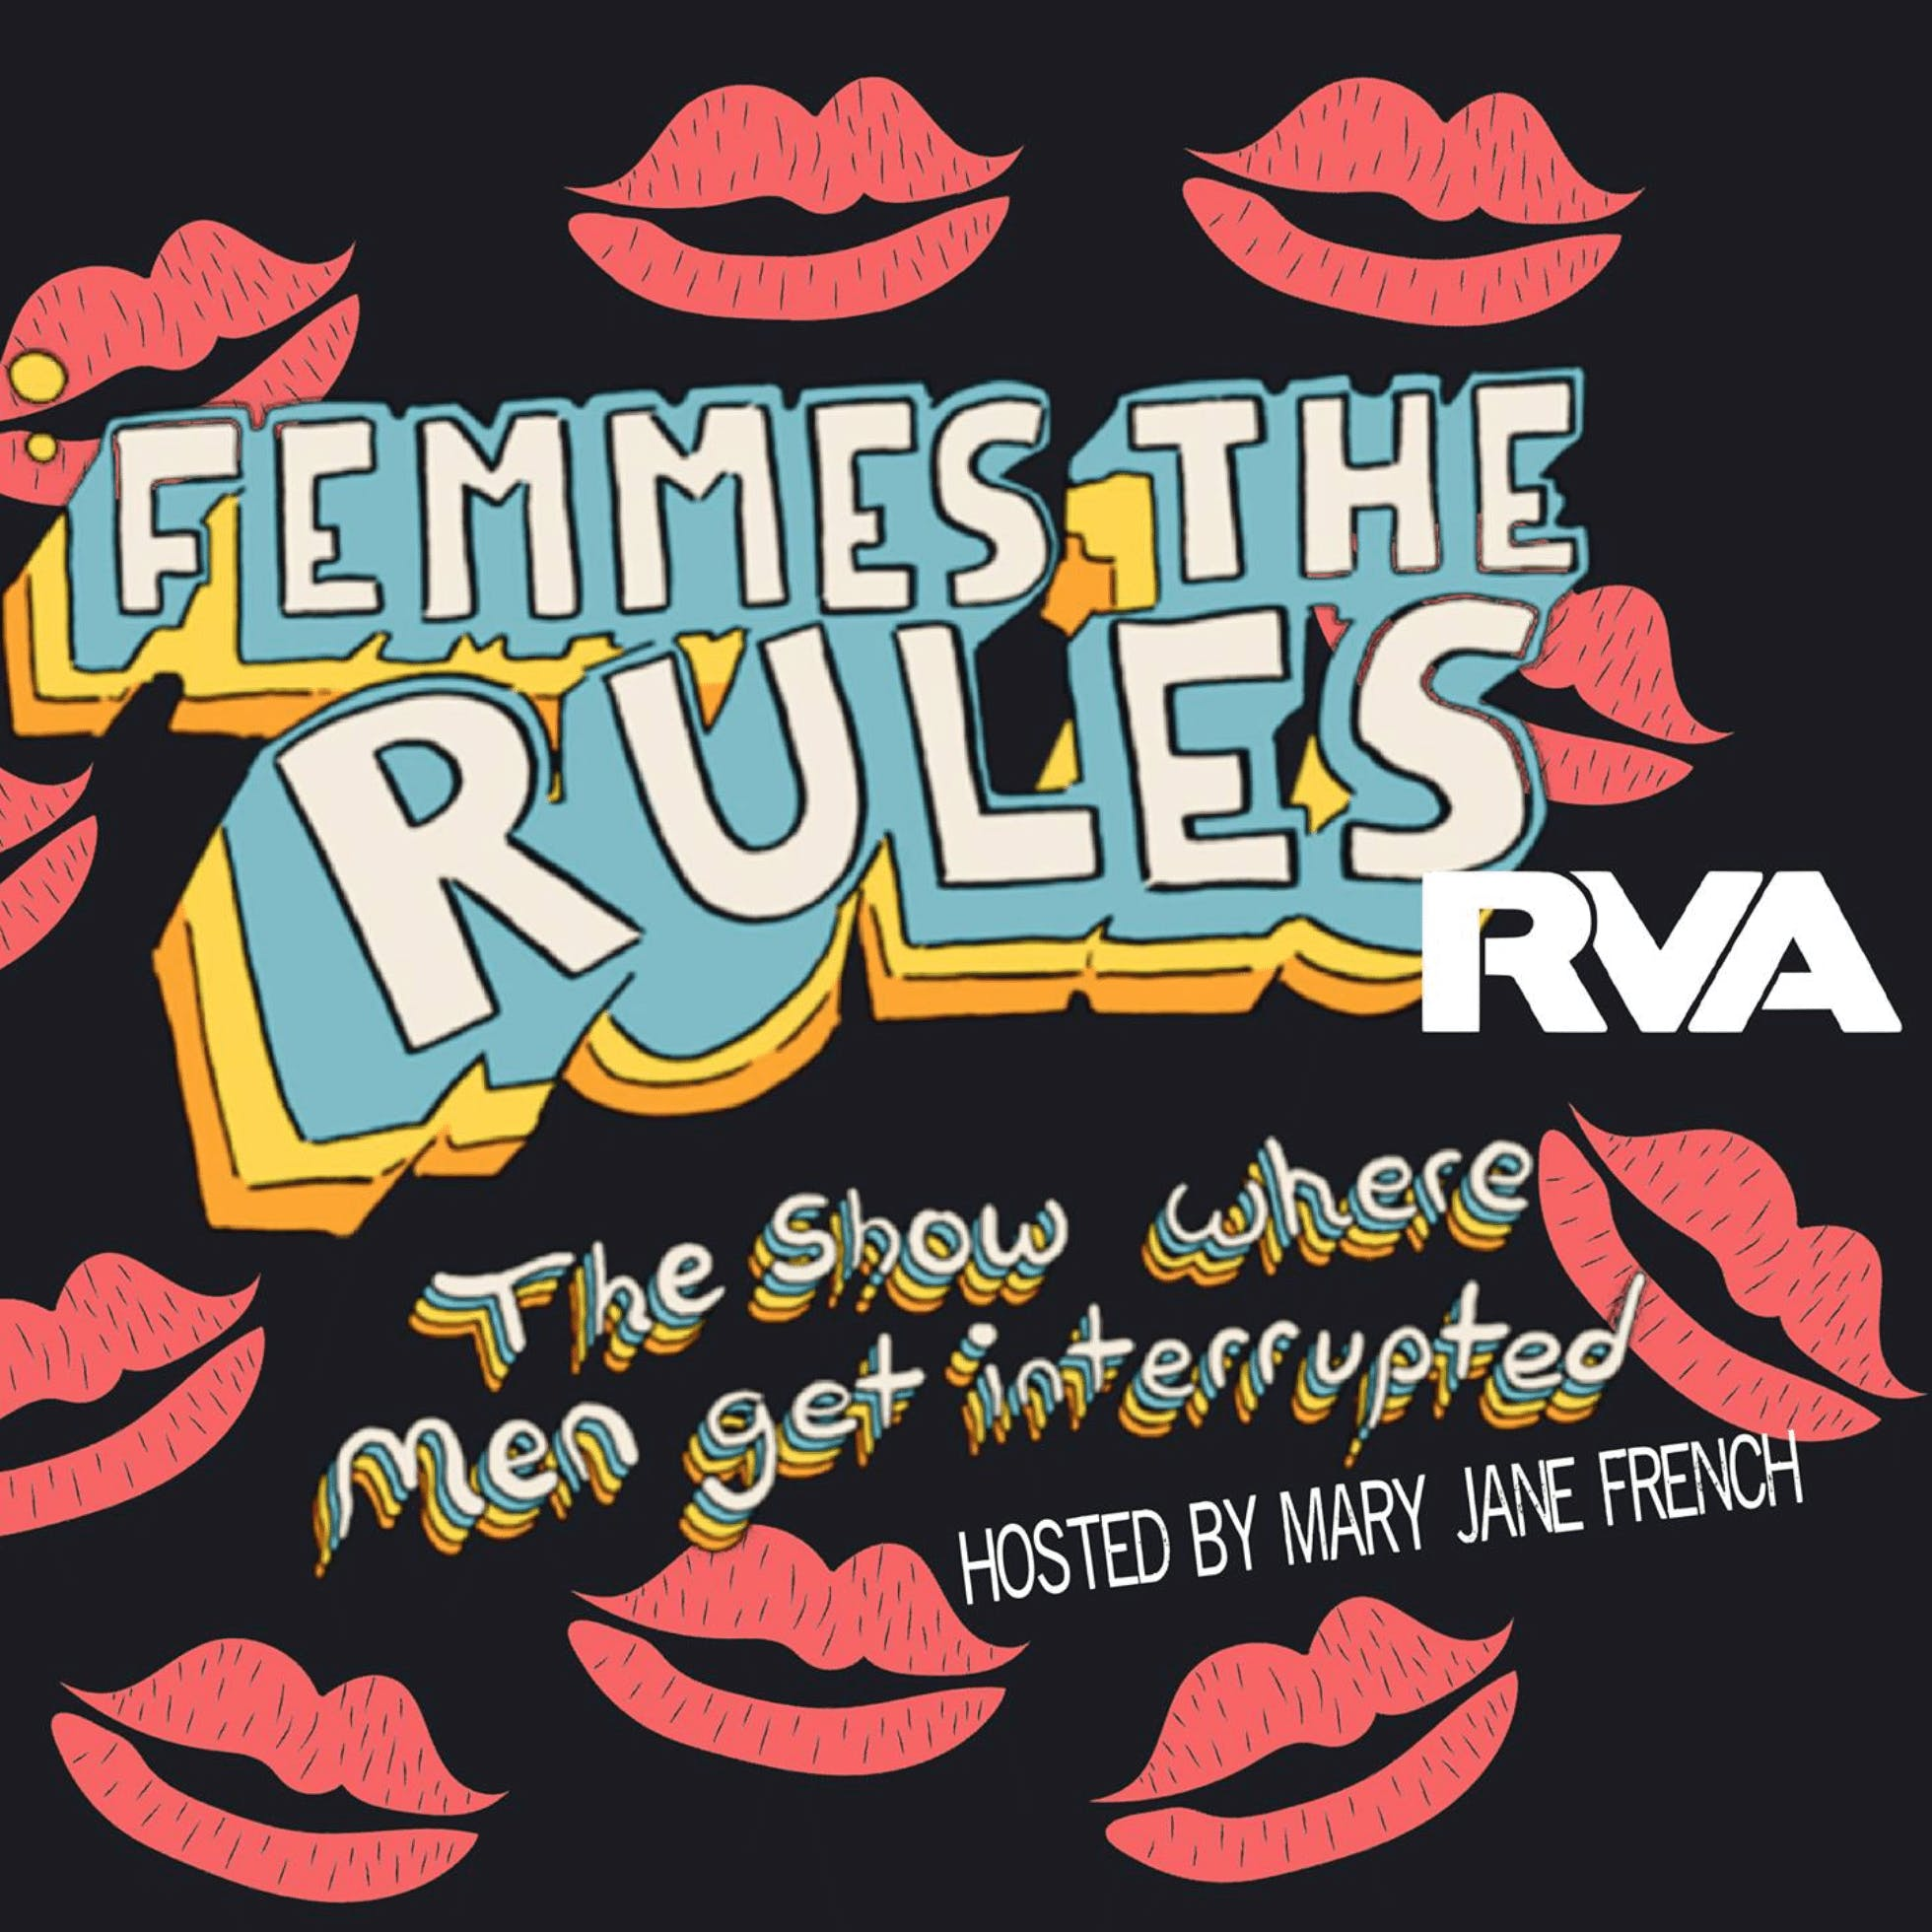 Femmes the Rules